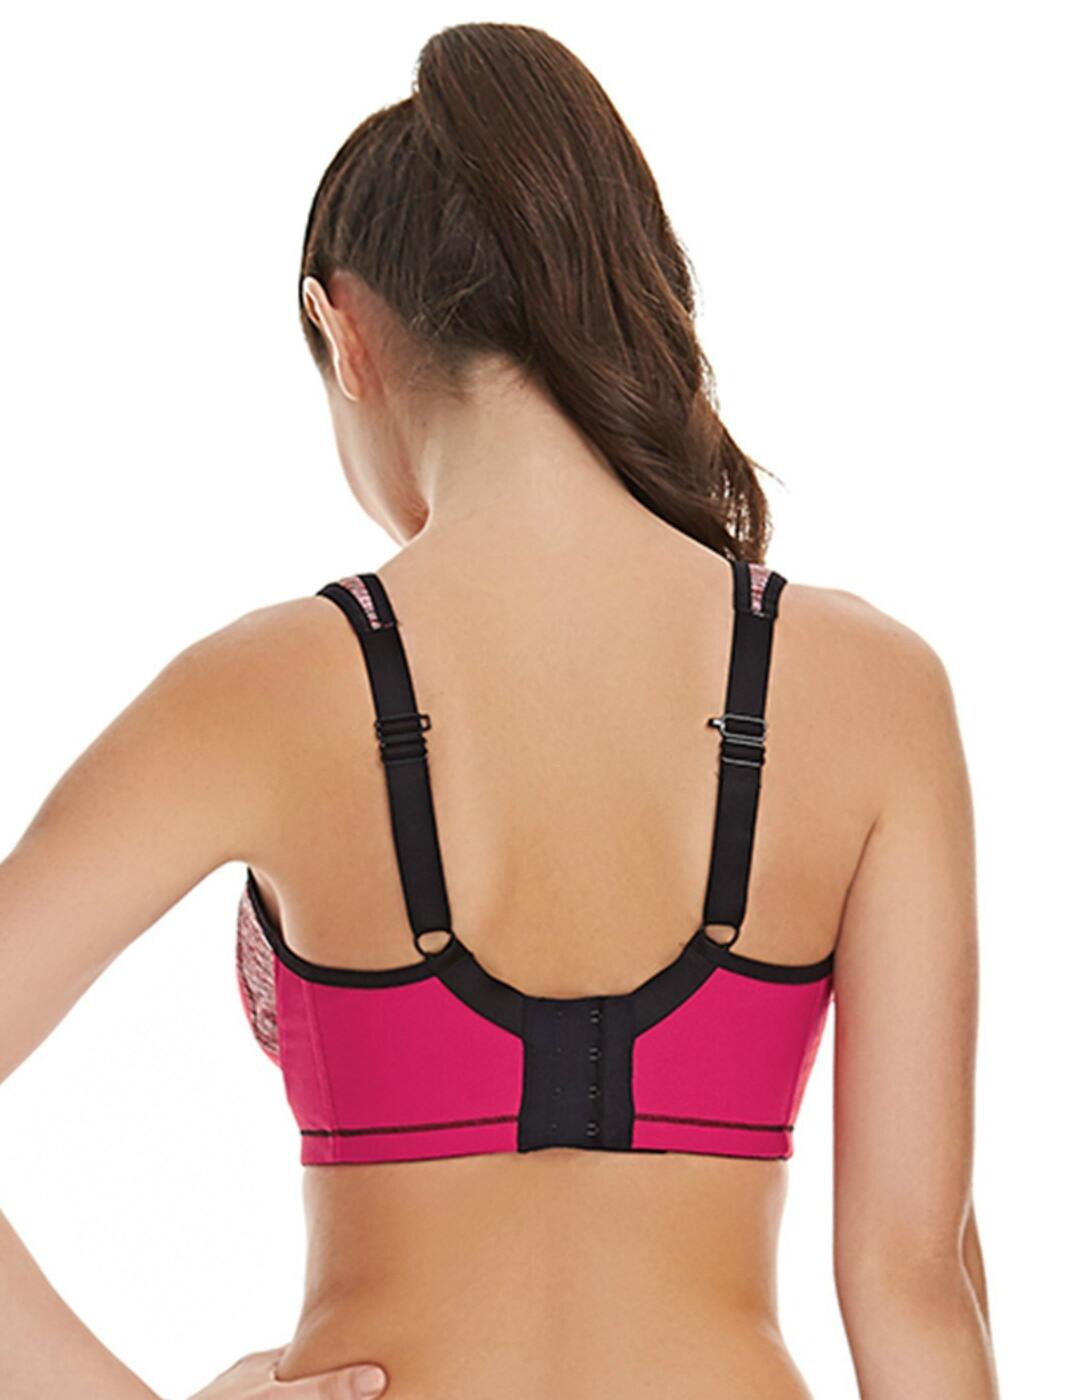 Freya-Active-Sonic-Sports-Bra-4892-Underwired-High-Impact-Gym-Workout-Bras thumbnail 5